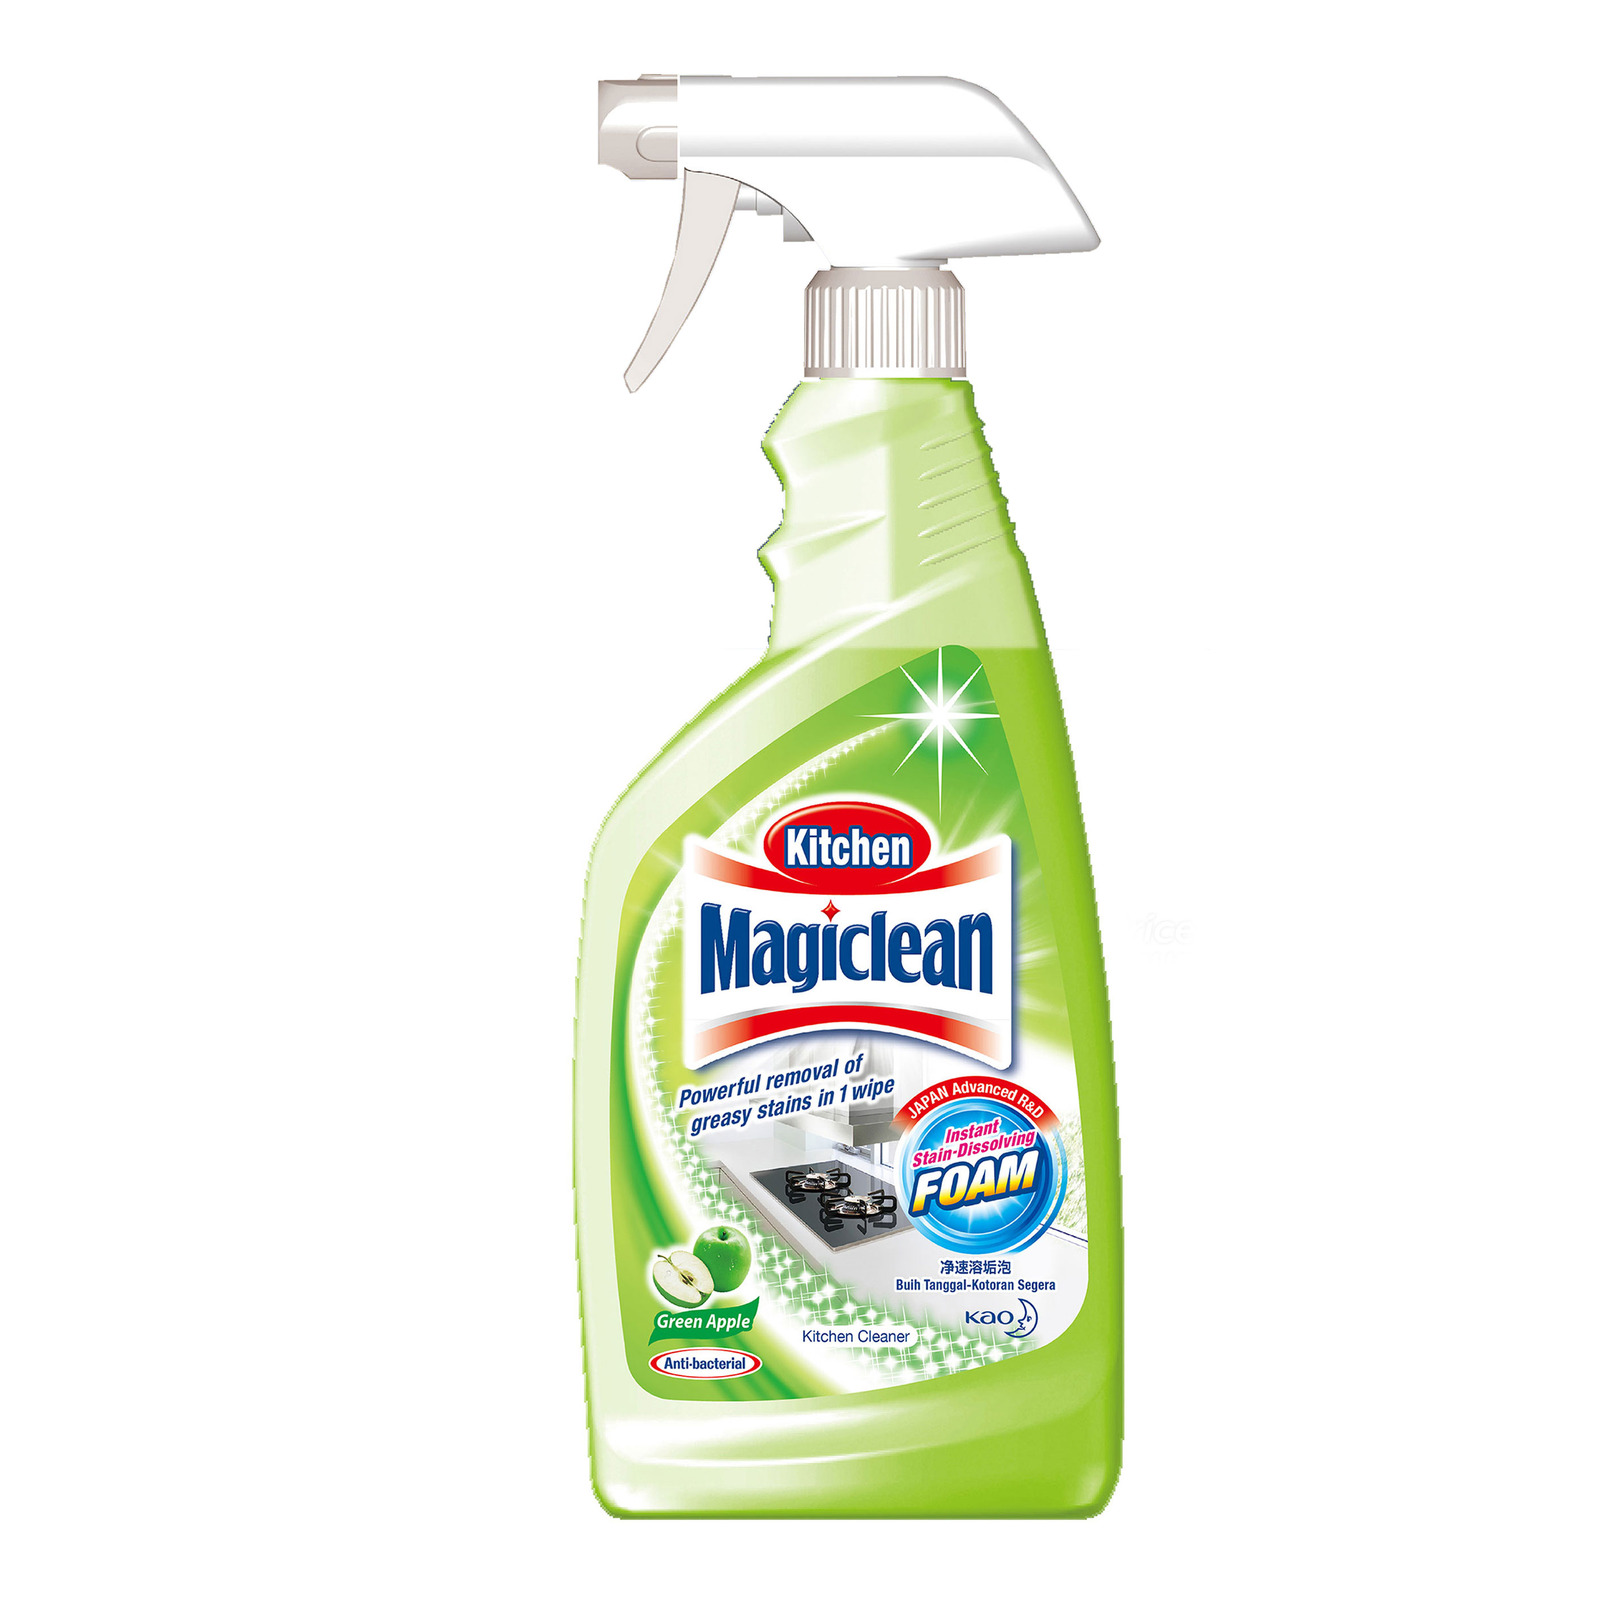 Magiclean Green Apple Scent Kitchen Cleaner